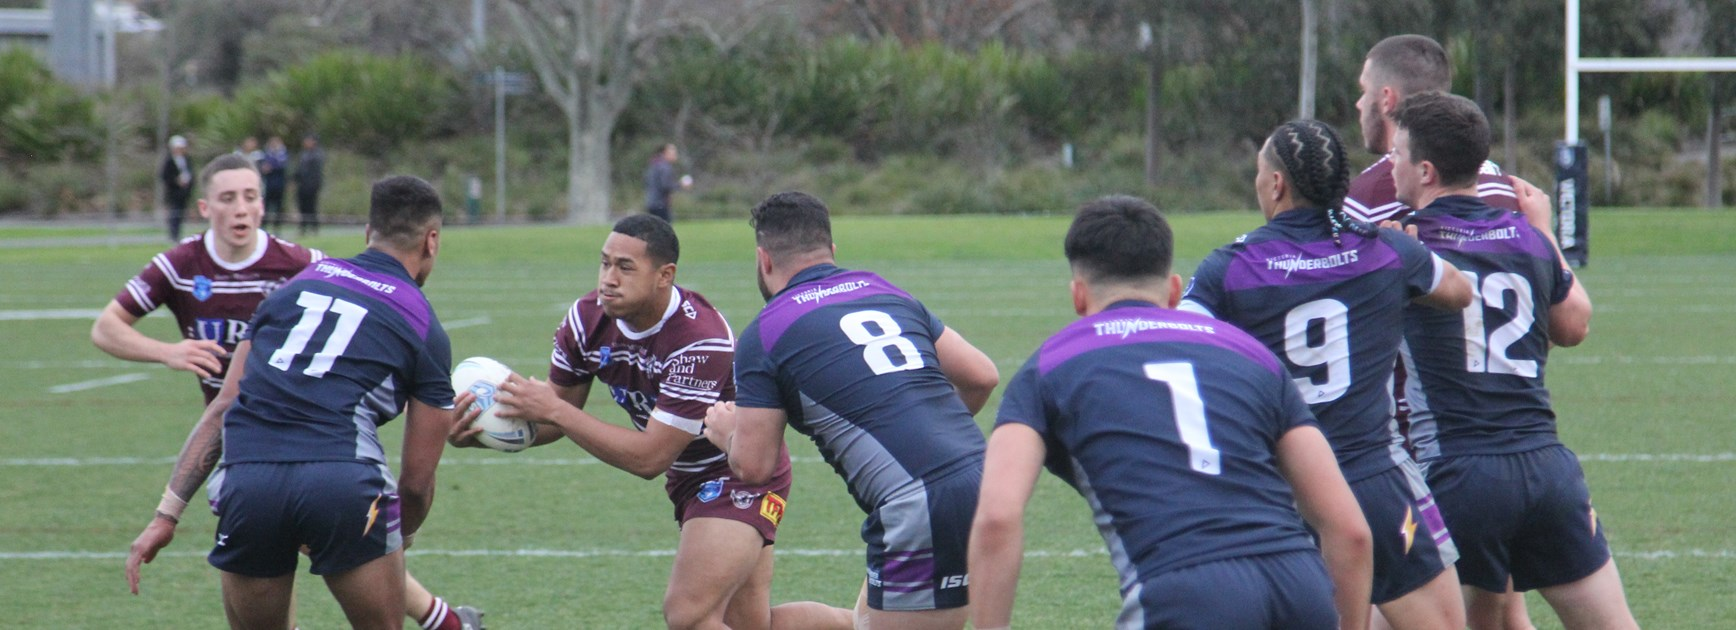 Sea Eagles go down to Thunderbolts in Jersey Flegg